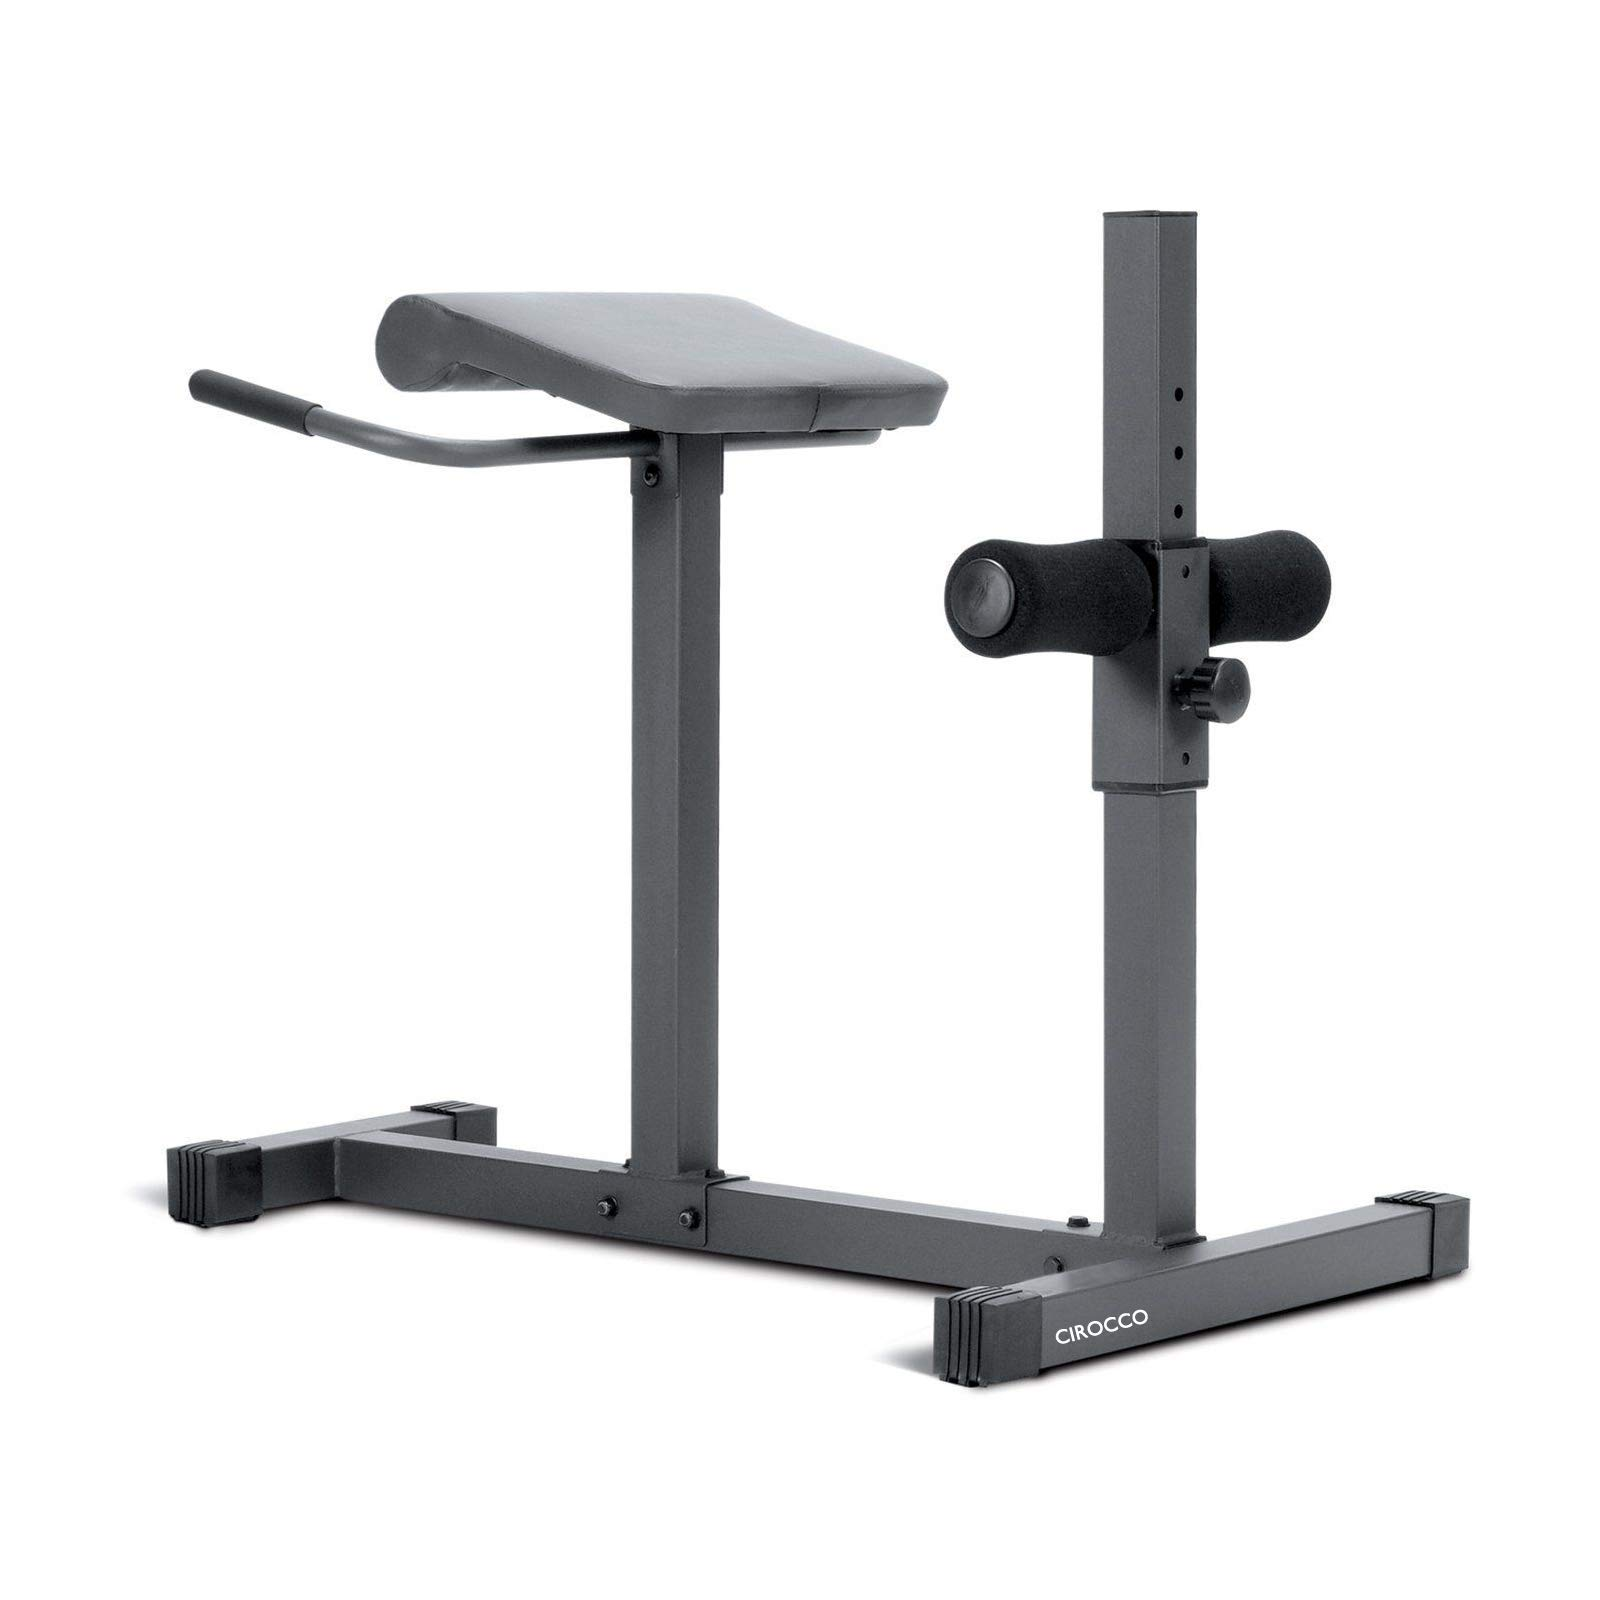 Cirocco Roman Chair Hyperextension Station Lower Back Muscle Gluteal Hamstring Abs Abdominal Core Exercise Bench | Heavy Duty Ergonomic Sturdy Helps Back Pain Posture Build Six Packs Home Gym Workout